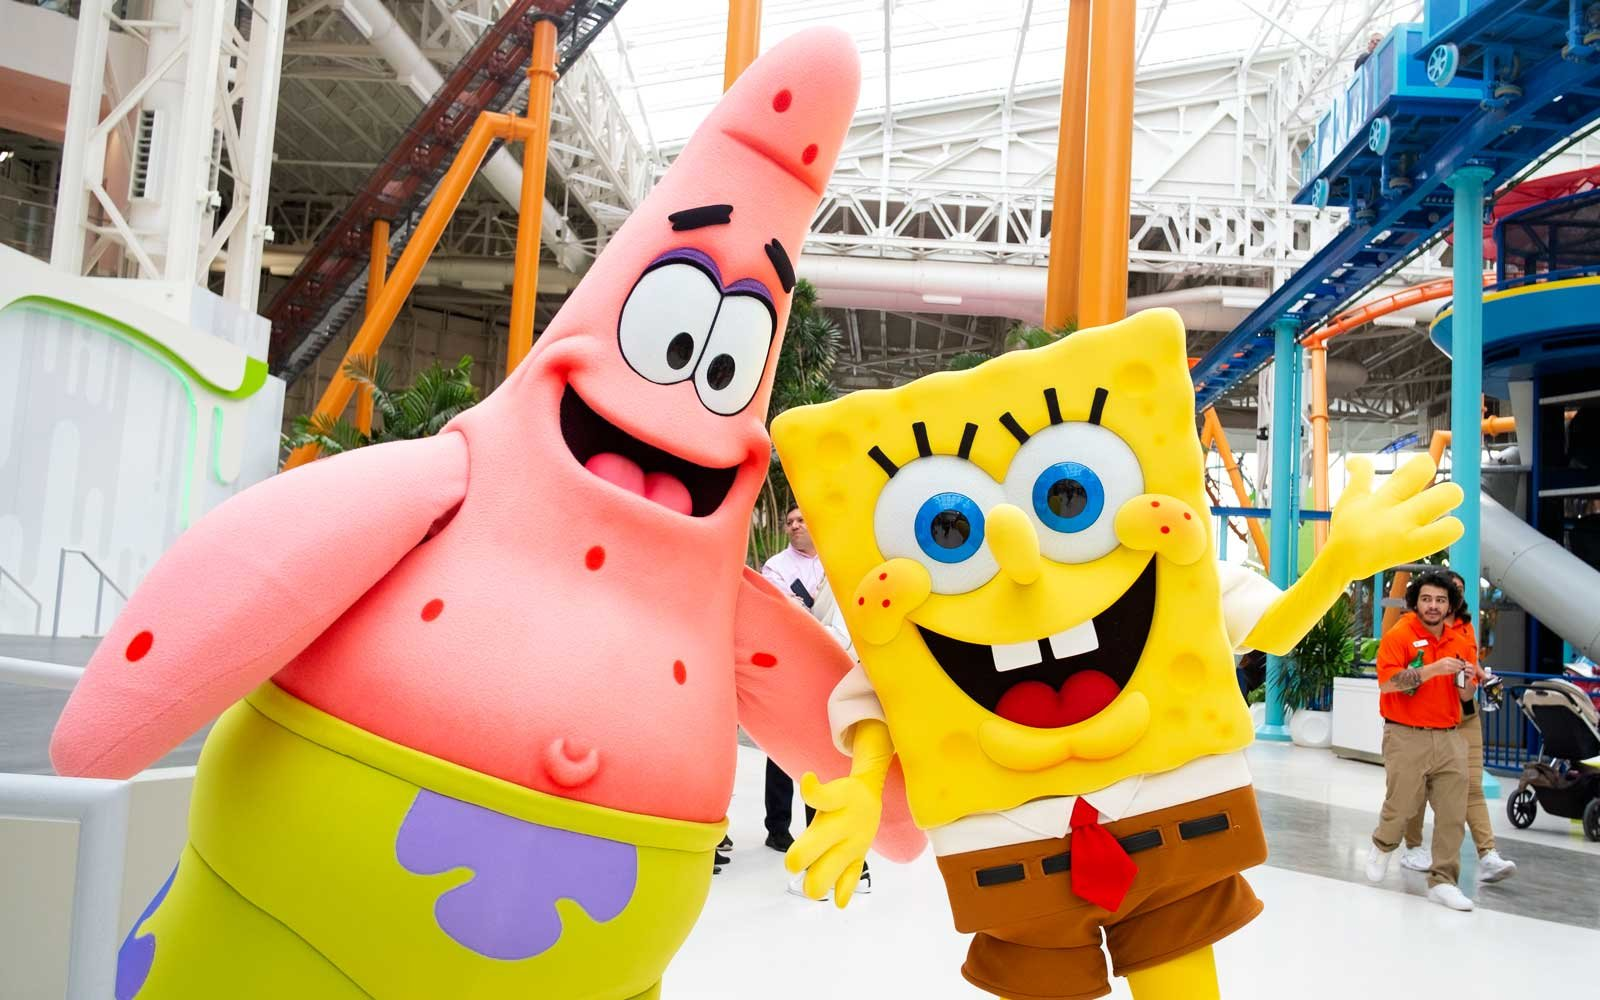 American Dream's Nickelodeon Universe in East Rutherford, New Jersey